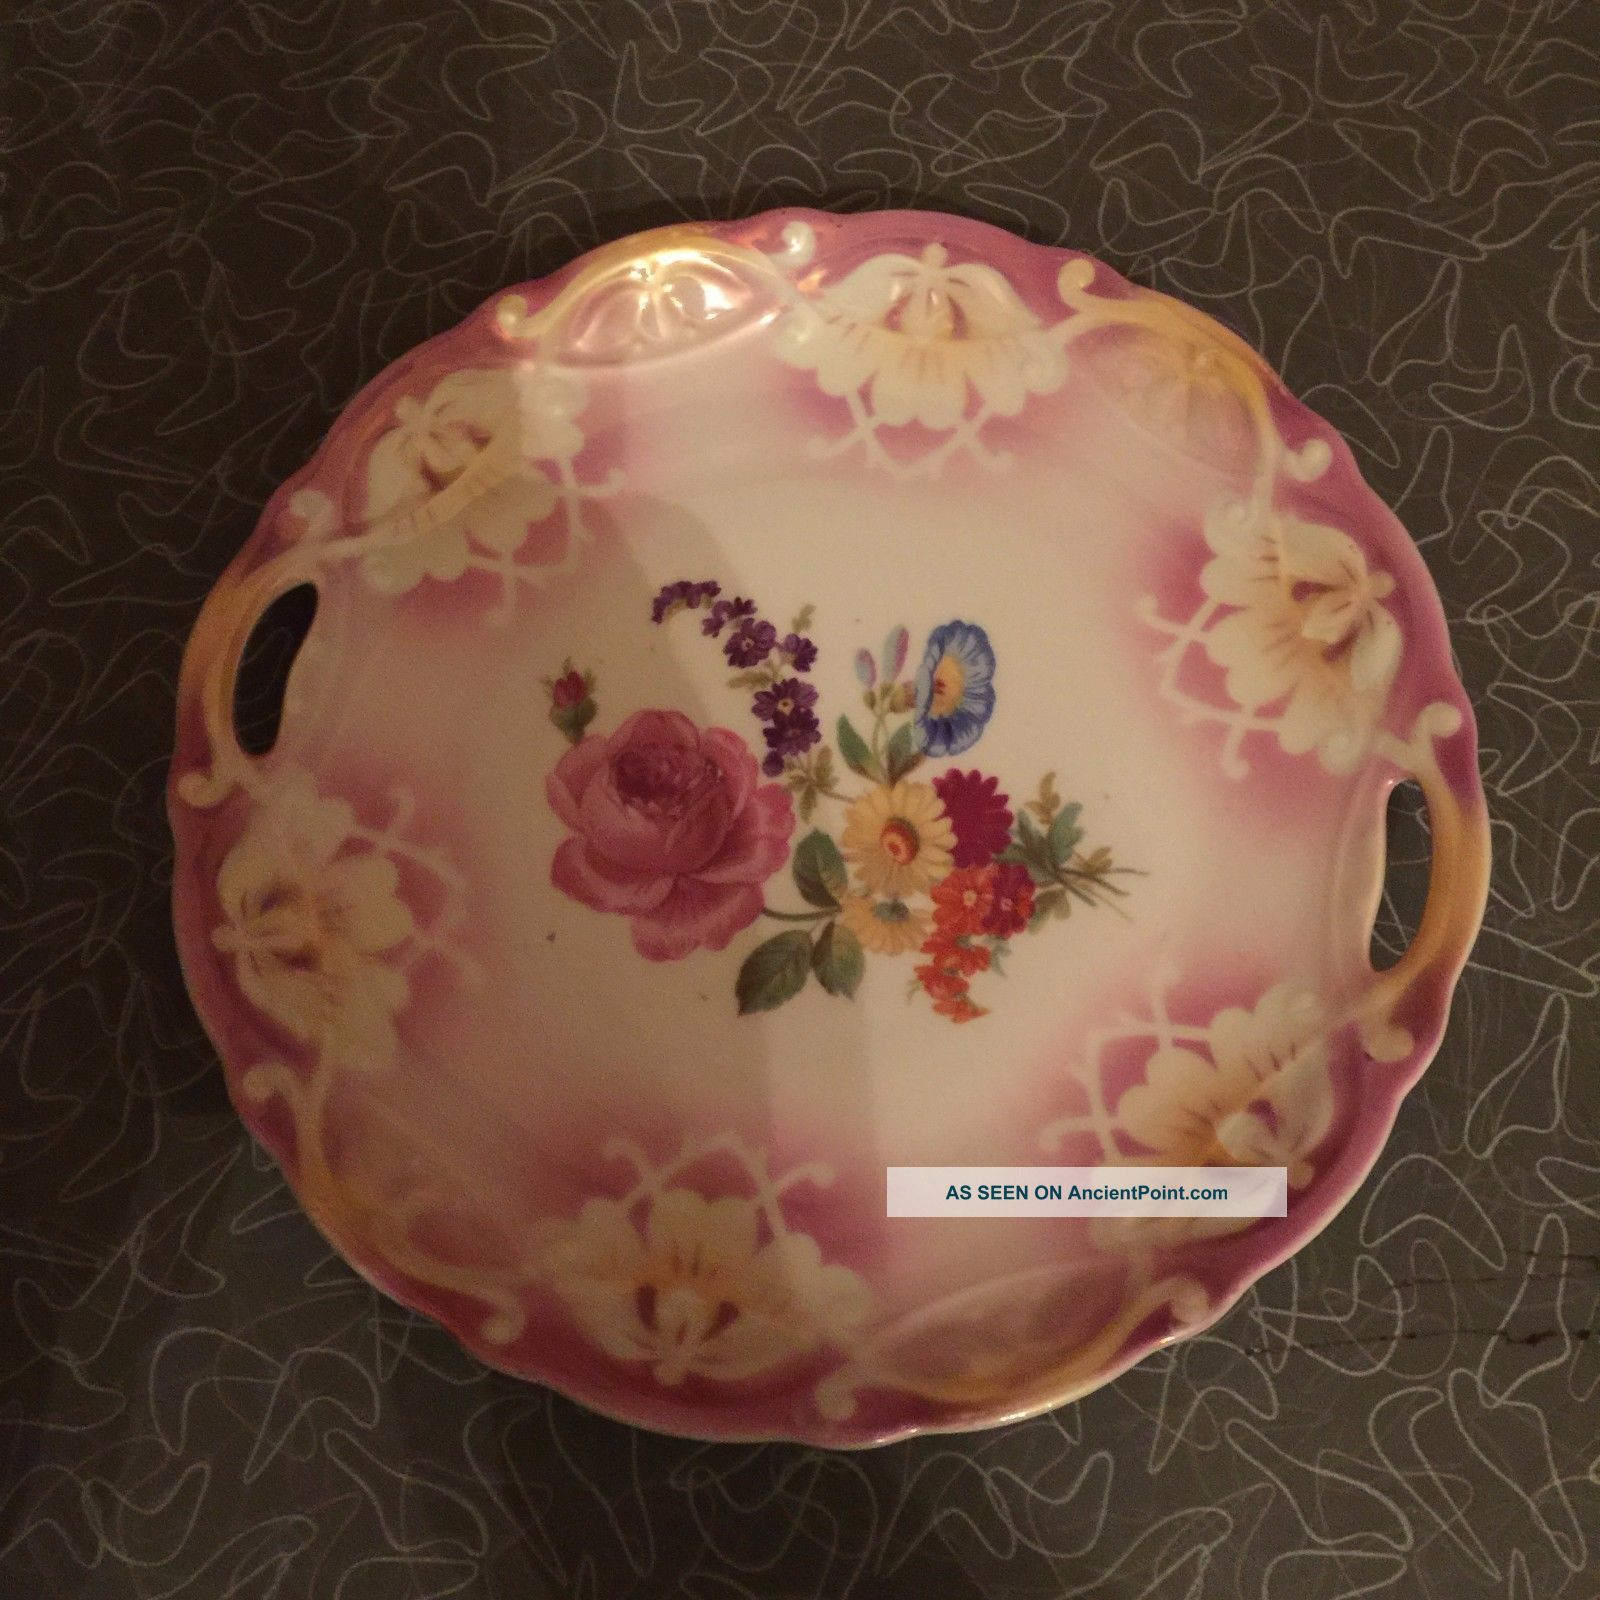 Antique Art Deco Pink Lusterware Flower Serving Plate With Enclosed Handles Plates & Chargers photo